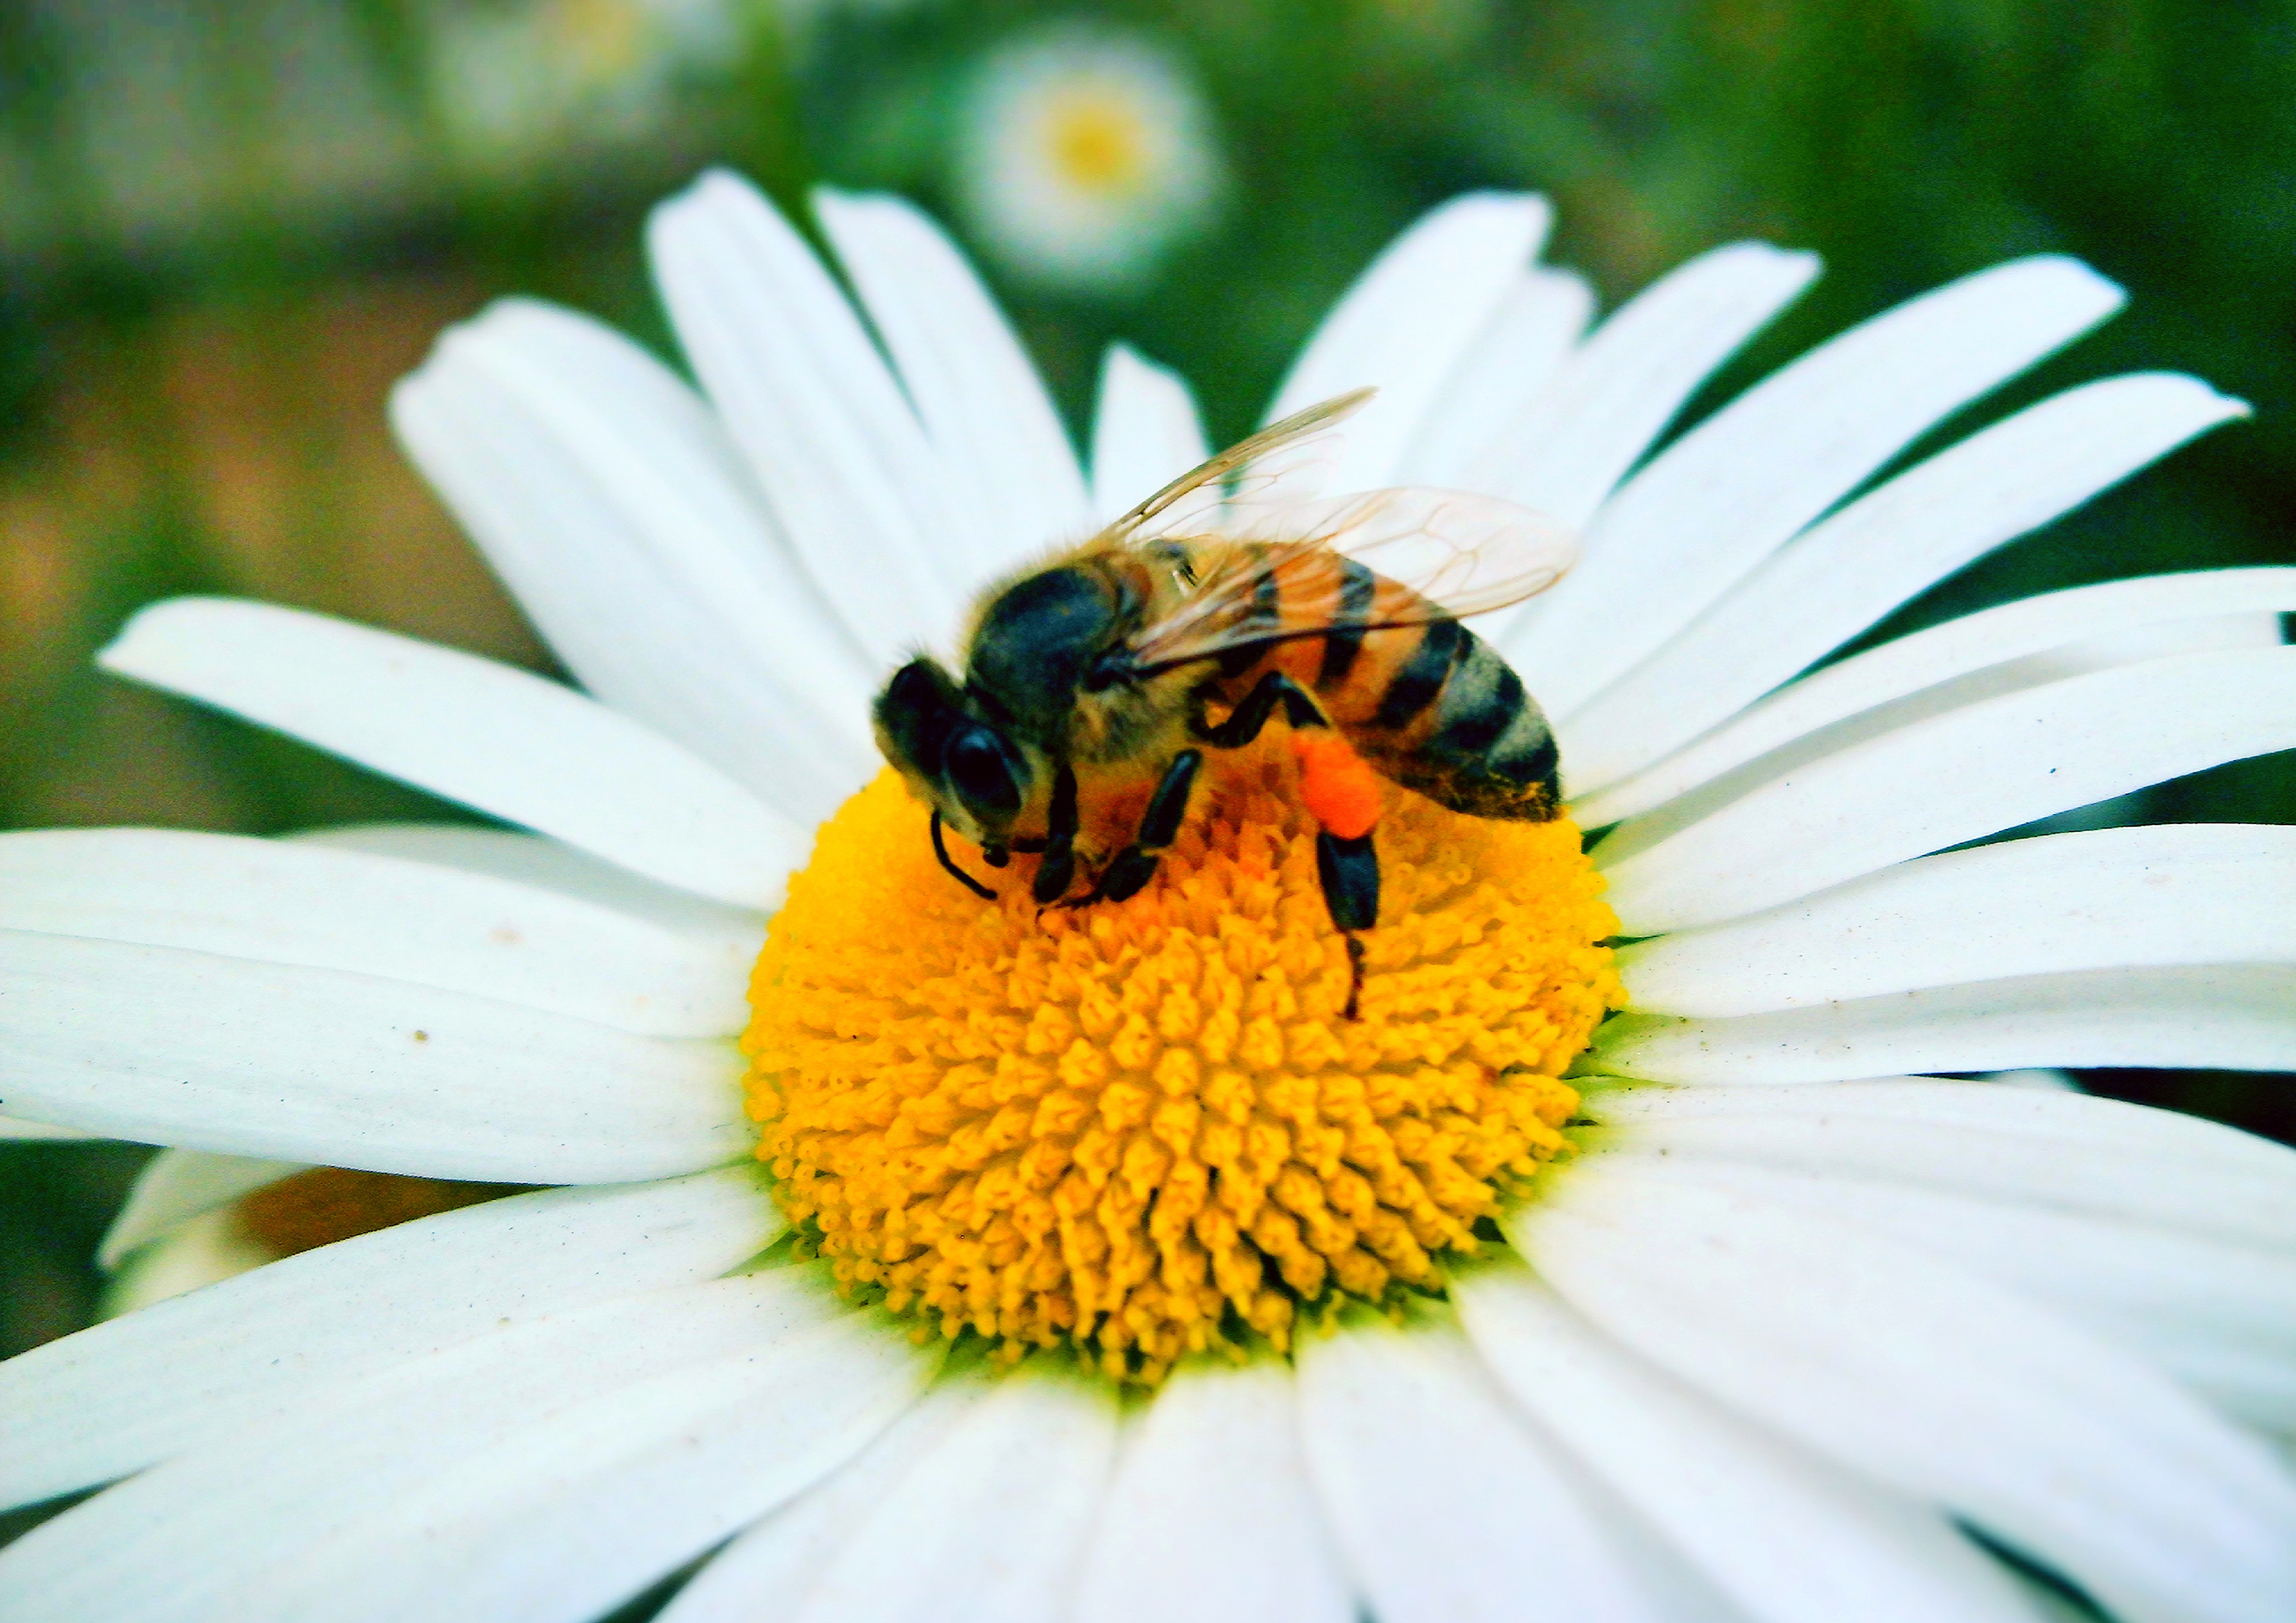 File:Bee on flower pollinating.jpg - Wikimedia Commons